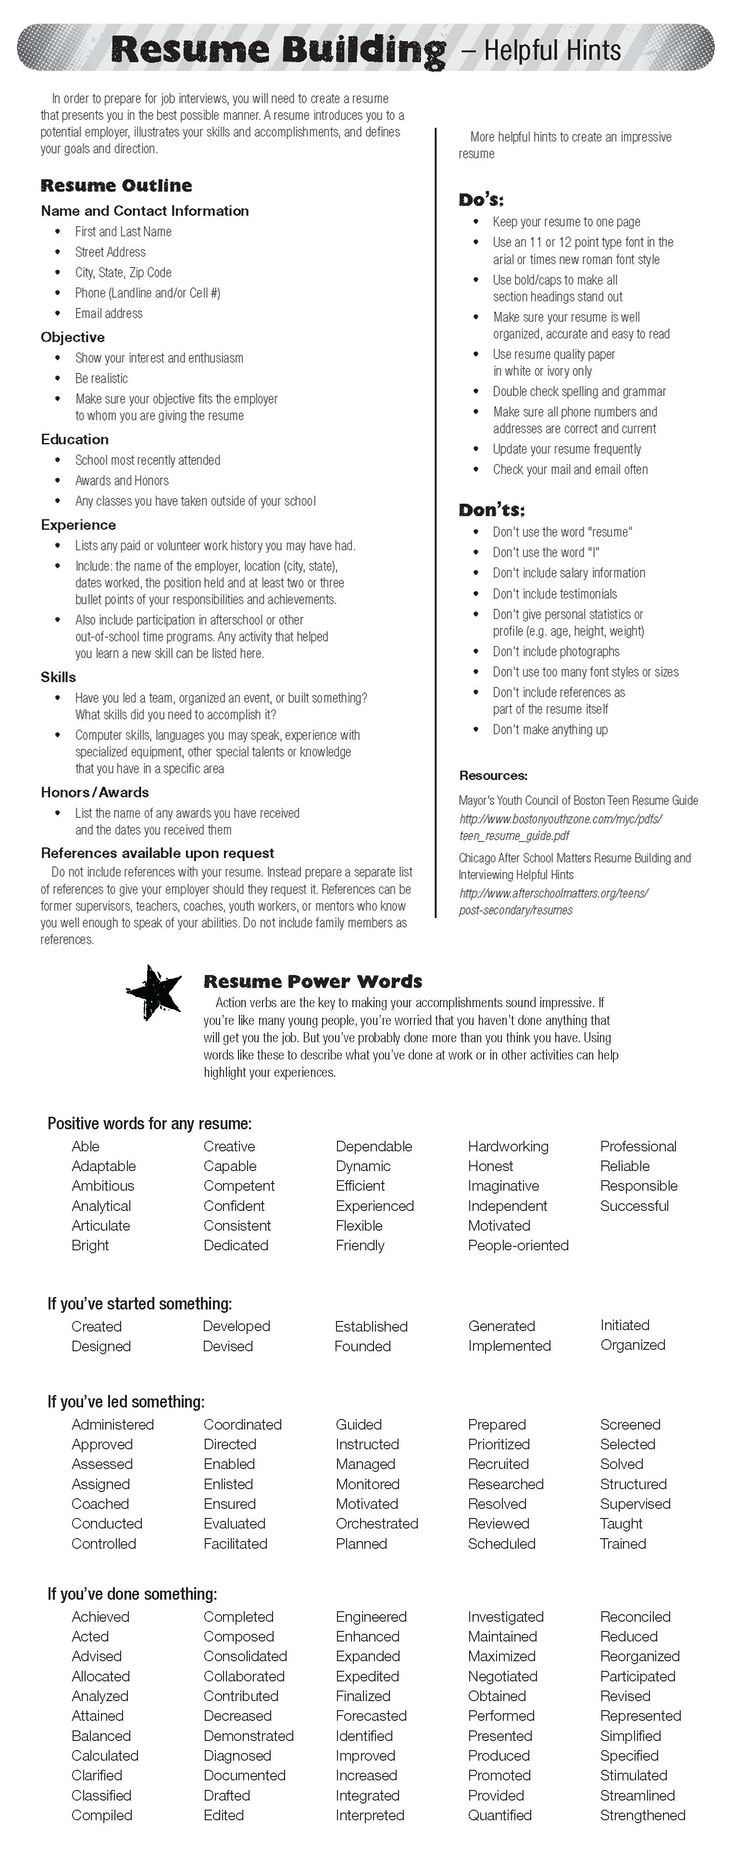 Opposenewapstandardsus  Splendid  Ideas About Resume On Pinterest  Cv Format Resume  With Handsome Check Out Todays Resume Building Tips Resume Resumepowerwords With Cute Media Planner Resume Also Resume Templates For Microsoft Word  In Addition Sample Legal Resumes And Resume Financial Analyst As Well As Grad School Resume Sample Additionally I Don T Have A Resume From Pinterestcom With Opposenewapstandardsus  Handsome  Ideas About Resume On Pinterest  Cv Format Resume  With Cute Check Out Todays Resume Building Tips Resume Resumepowerwords And Splendid Media Planner Resume Also Resume Templates For Microsoft Word  In Addition Sample Legal Resumes From Pinterestcom